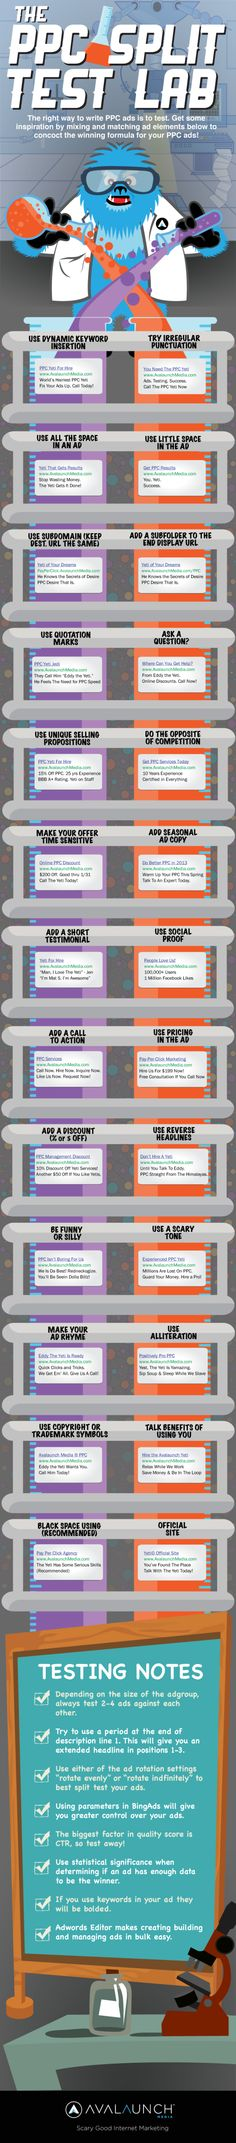 Search Marketing: Pay-Per-Click Testing – Infographic!